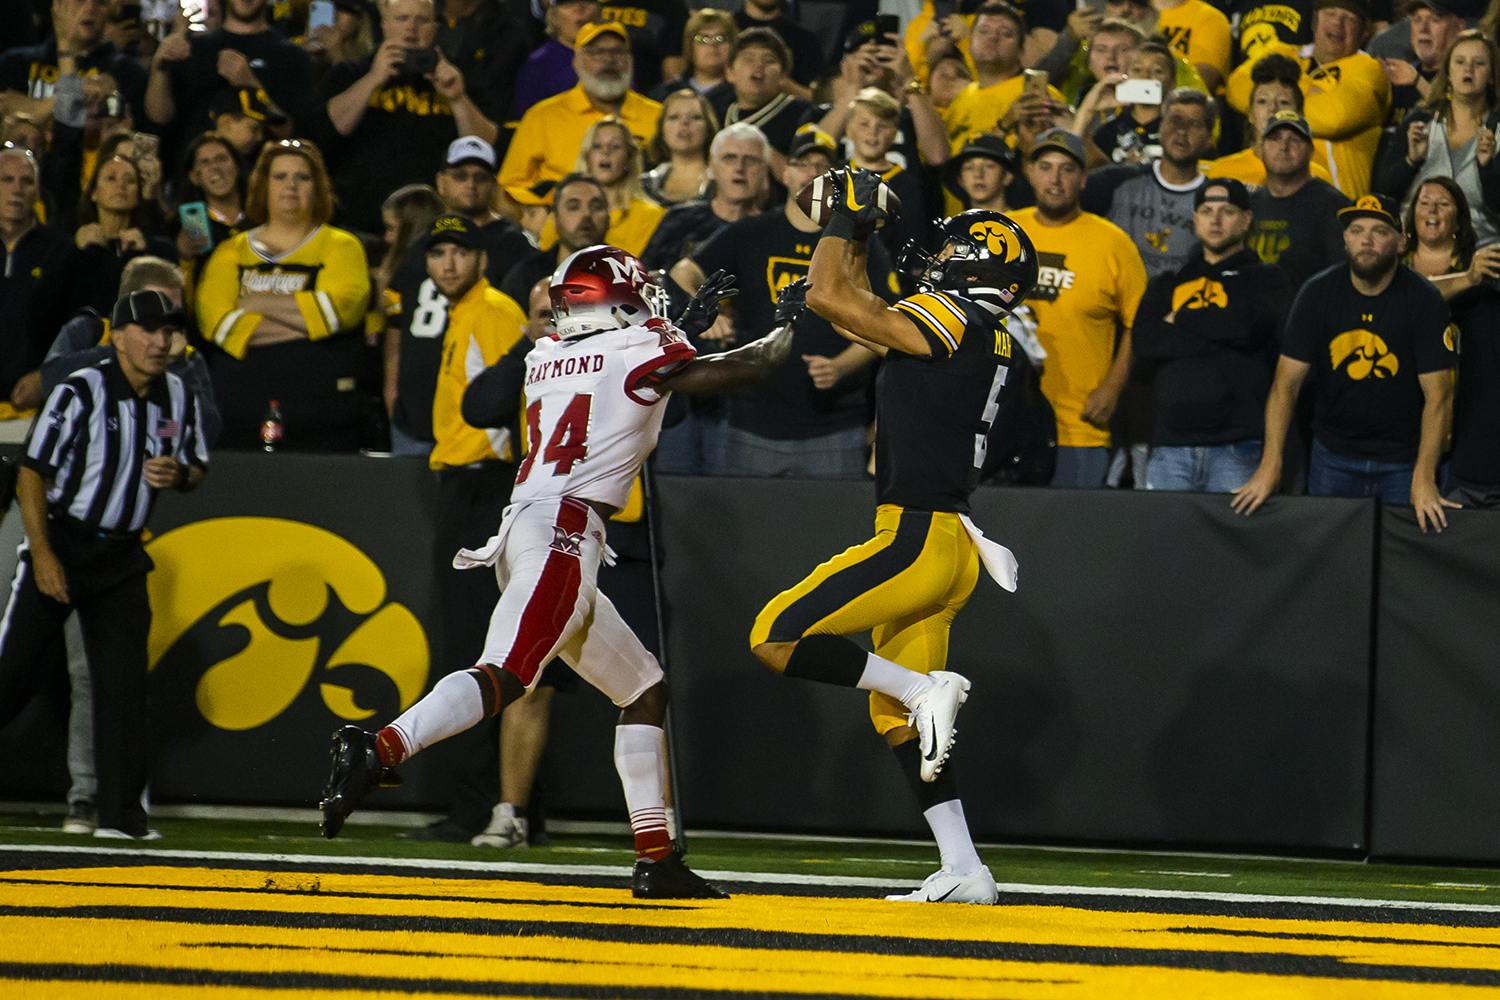 Iowa wide receiver Oliver Martin catches a touchdown pass during the football game against Miami (Ohio) at Kinnick Stadium on Saturday, August 31, 2019.